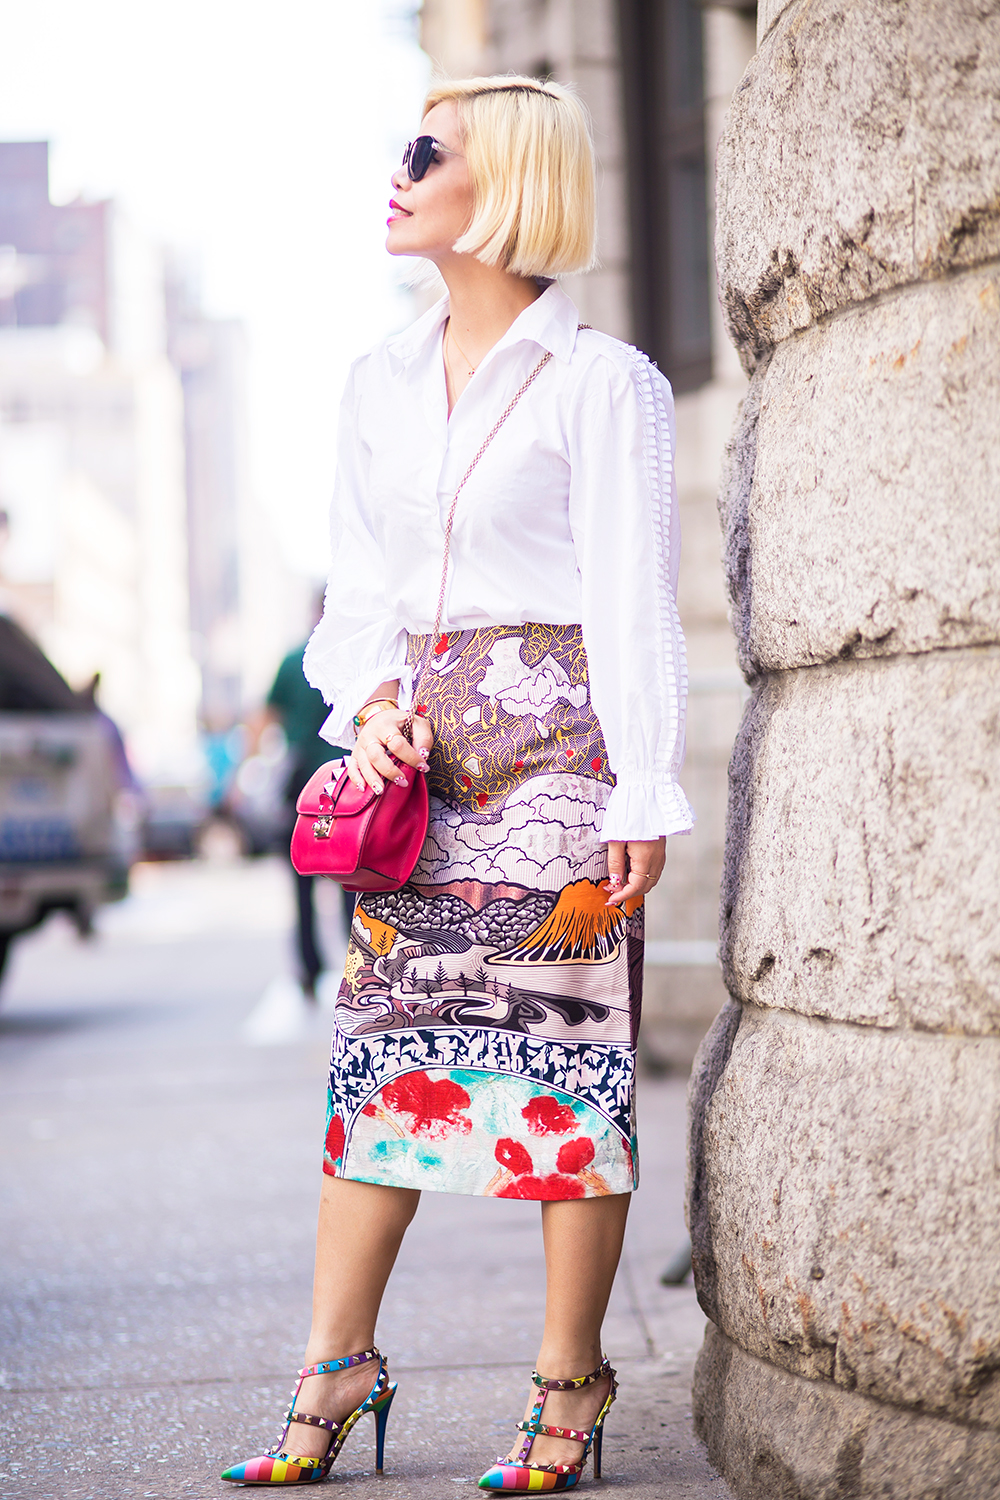 New York Fashion Week 2015- Street Style- Crystal Phuong